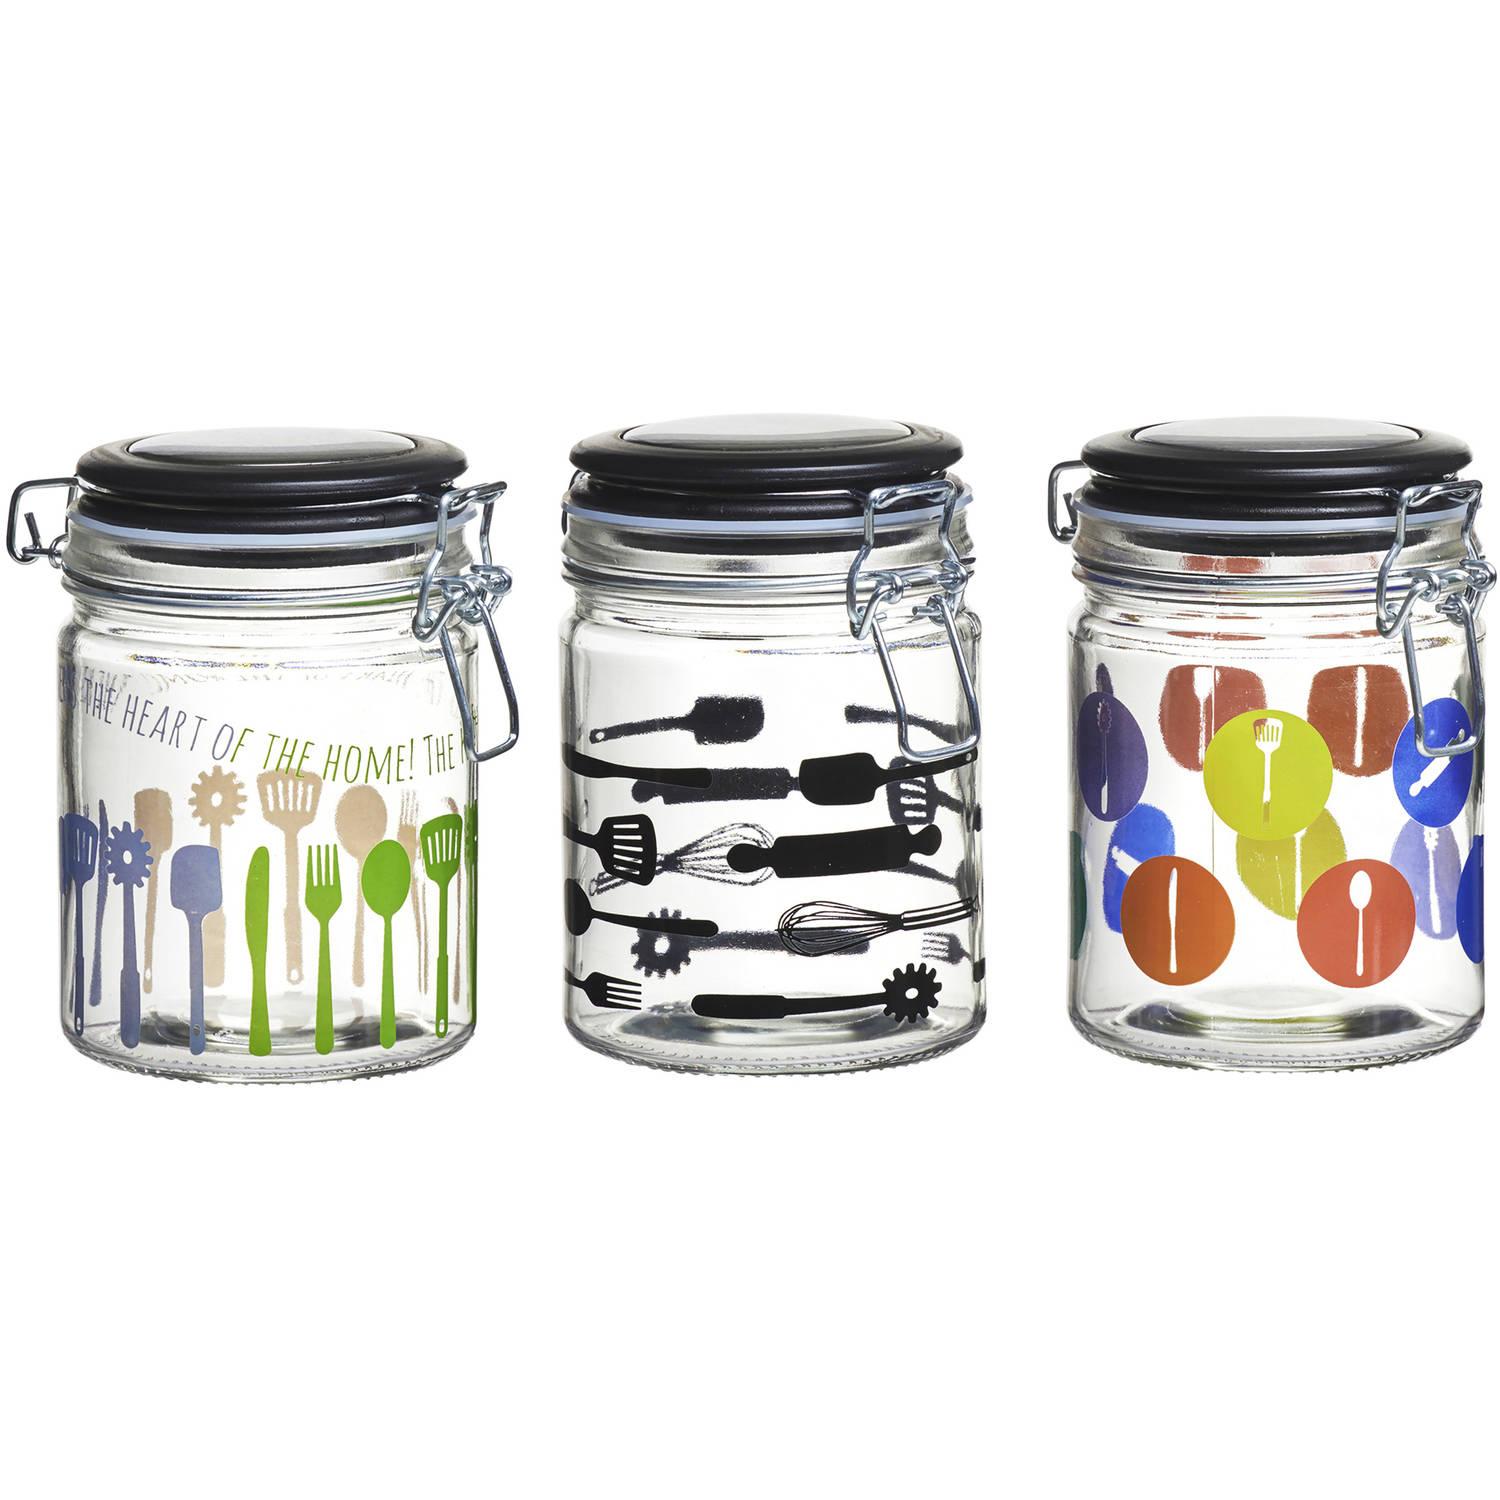 Kitchenware Hermetic Preserving Jars, 24 oz, Set of 3